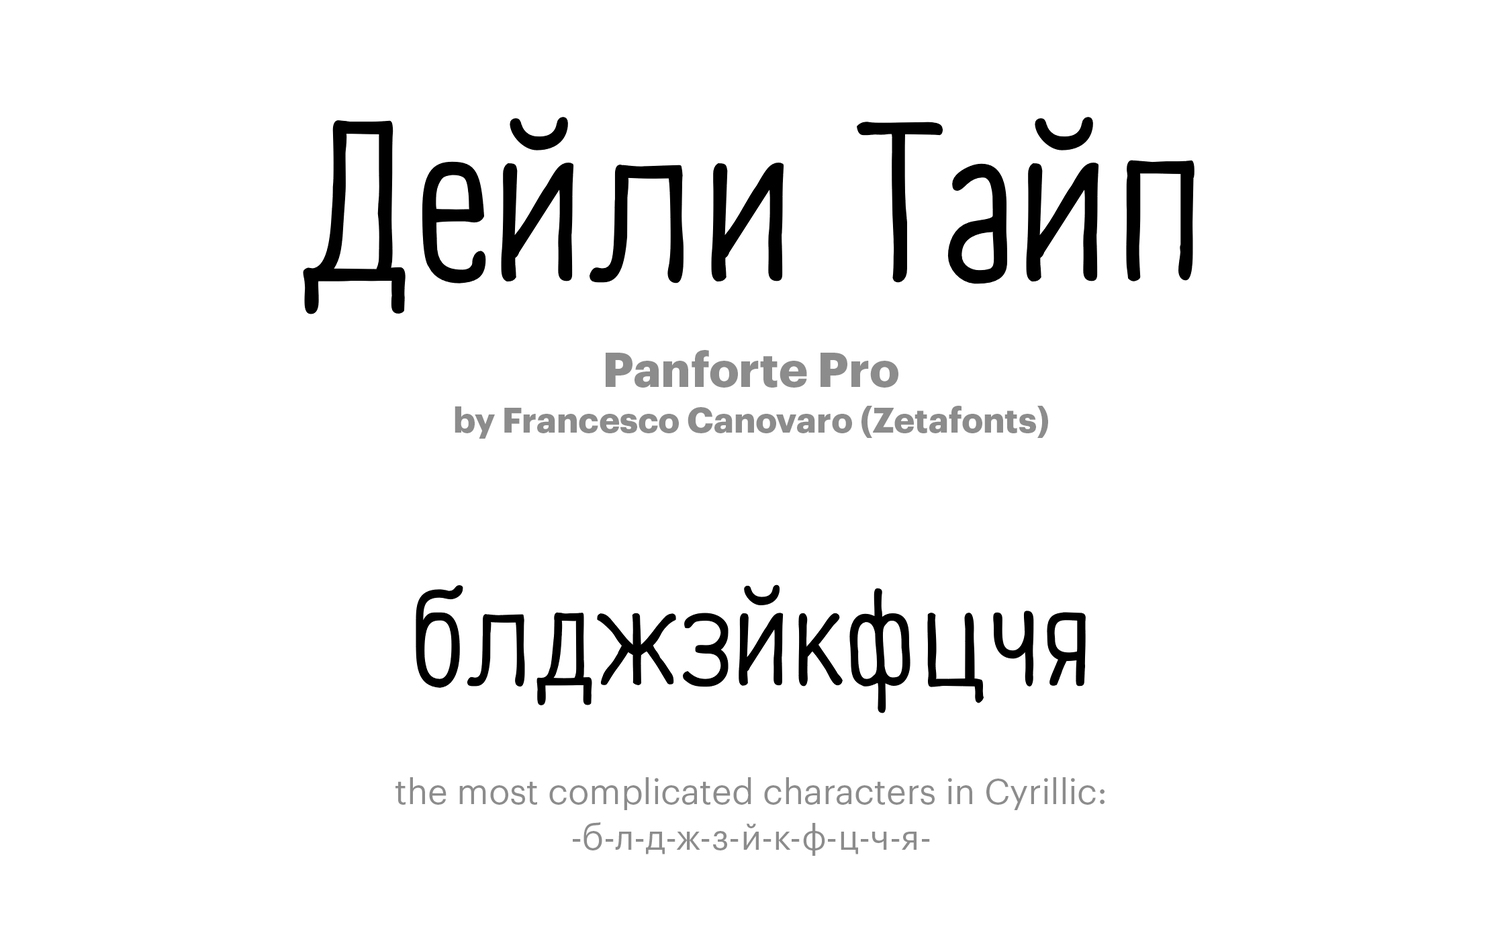 Panforte-Pro-by-Francesco-Canovaro-(Zetafonts)